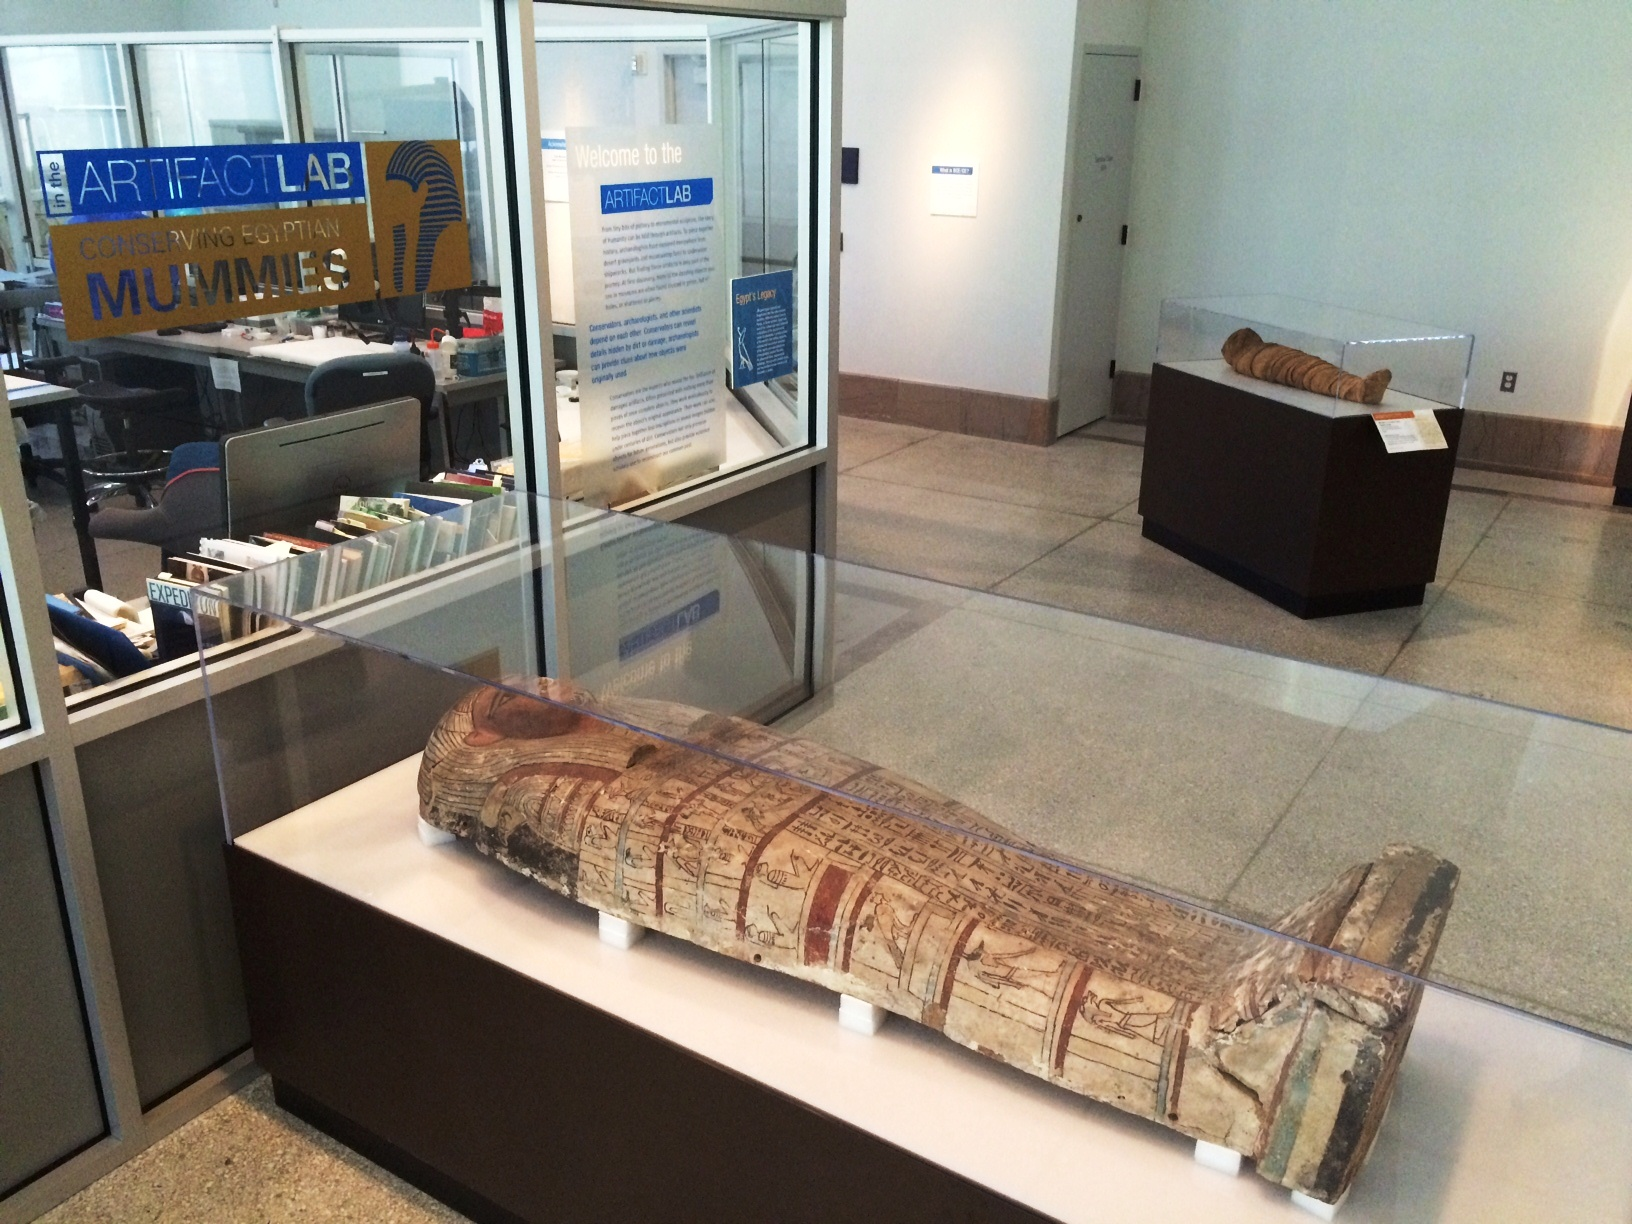 Tawahibre's coffin lid on display at the entrance to the Artifact Lab